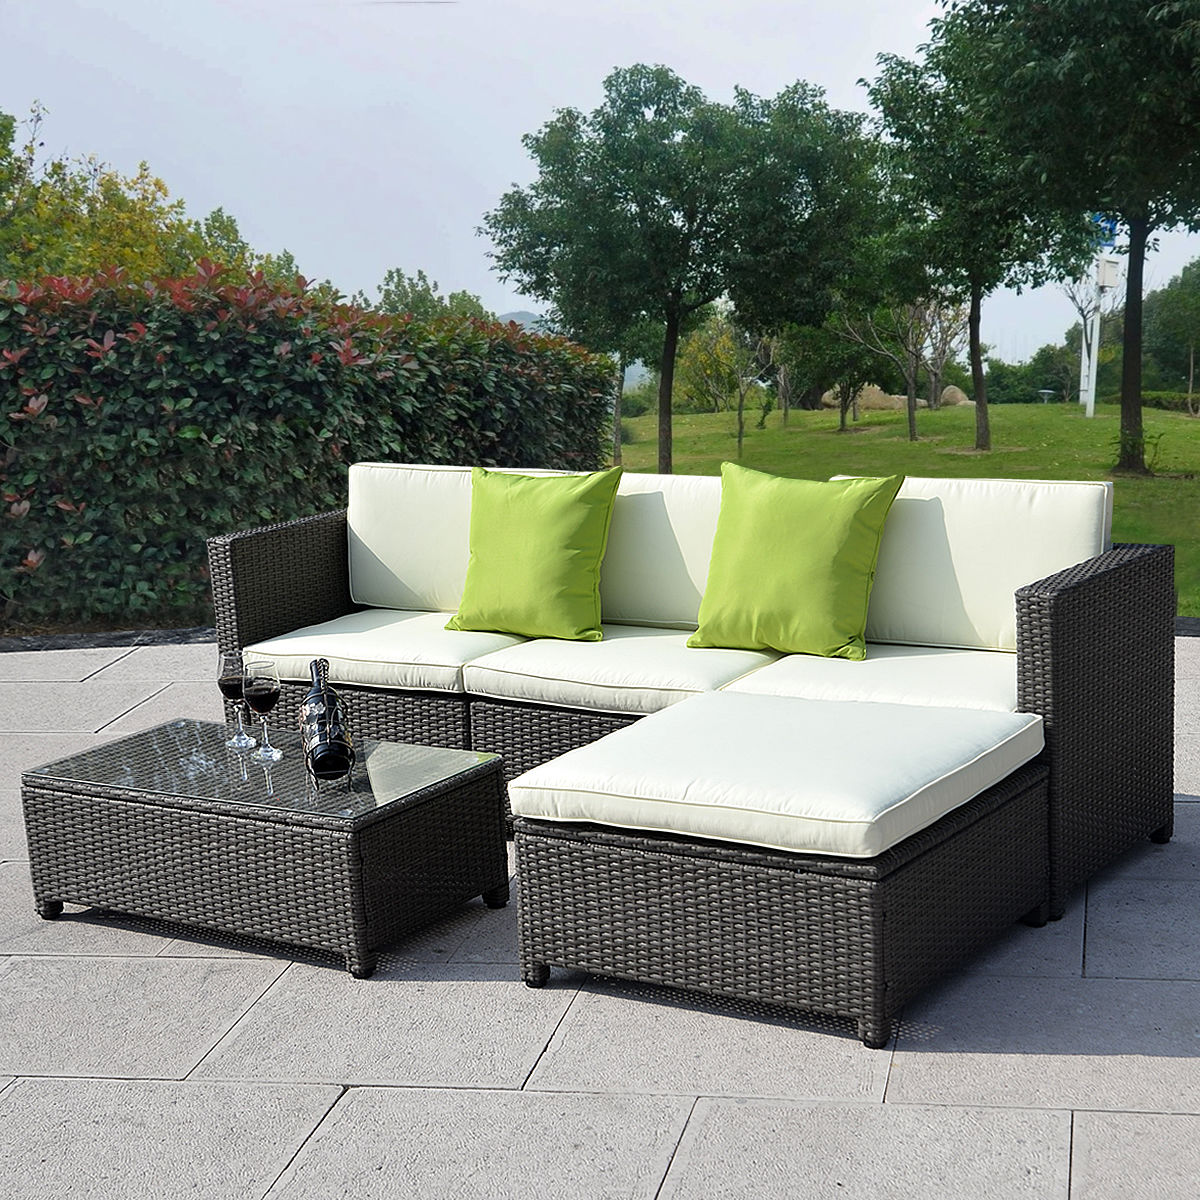 Outdoor patio wicker sofa set 5pc pe rattan for Outdoor wicker furniture